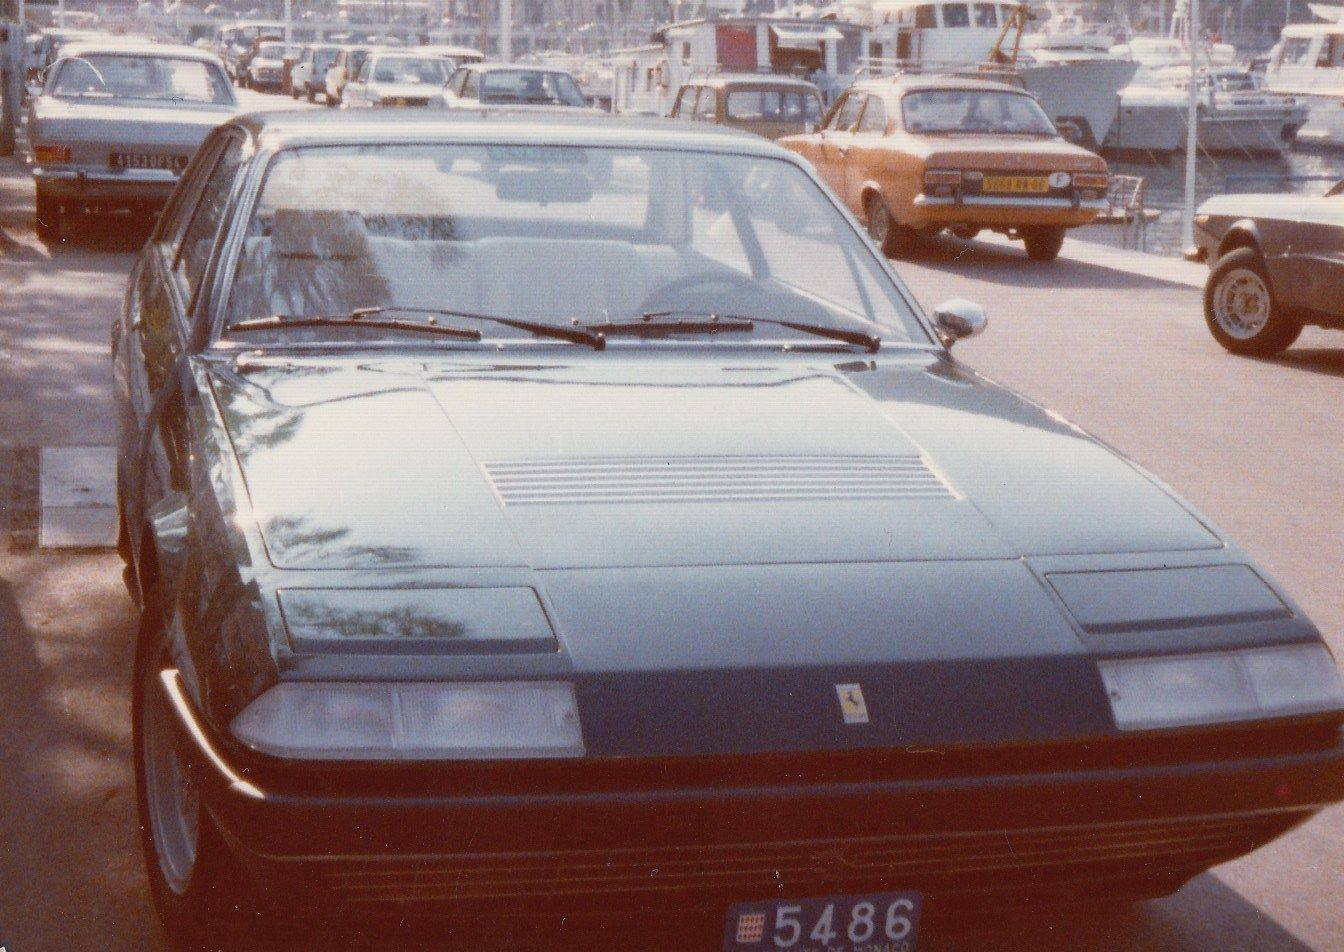 Ferrari 400, 365 gt4 + 2, Monaco harbour in '77